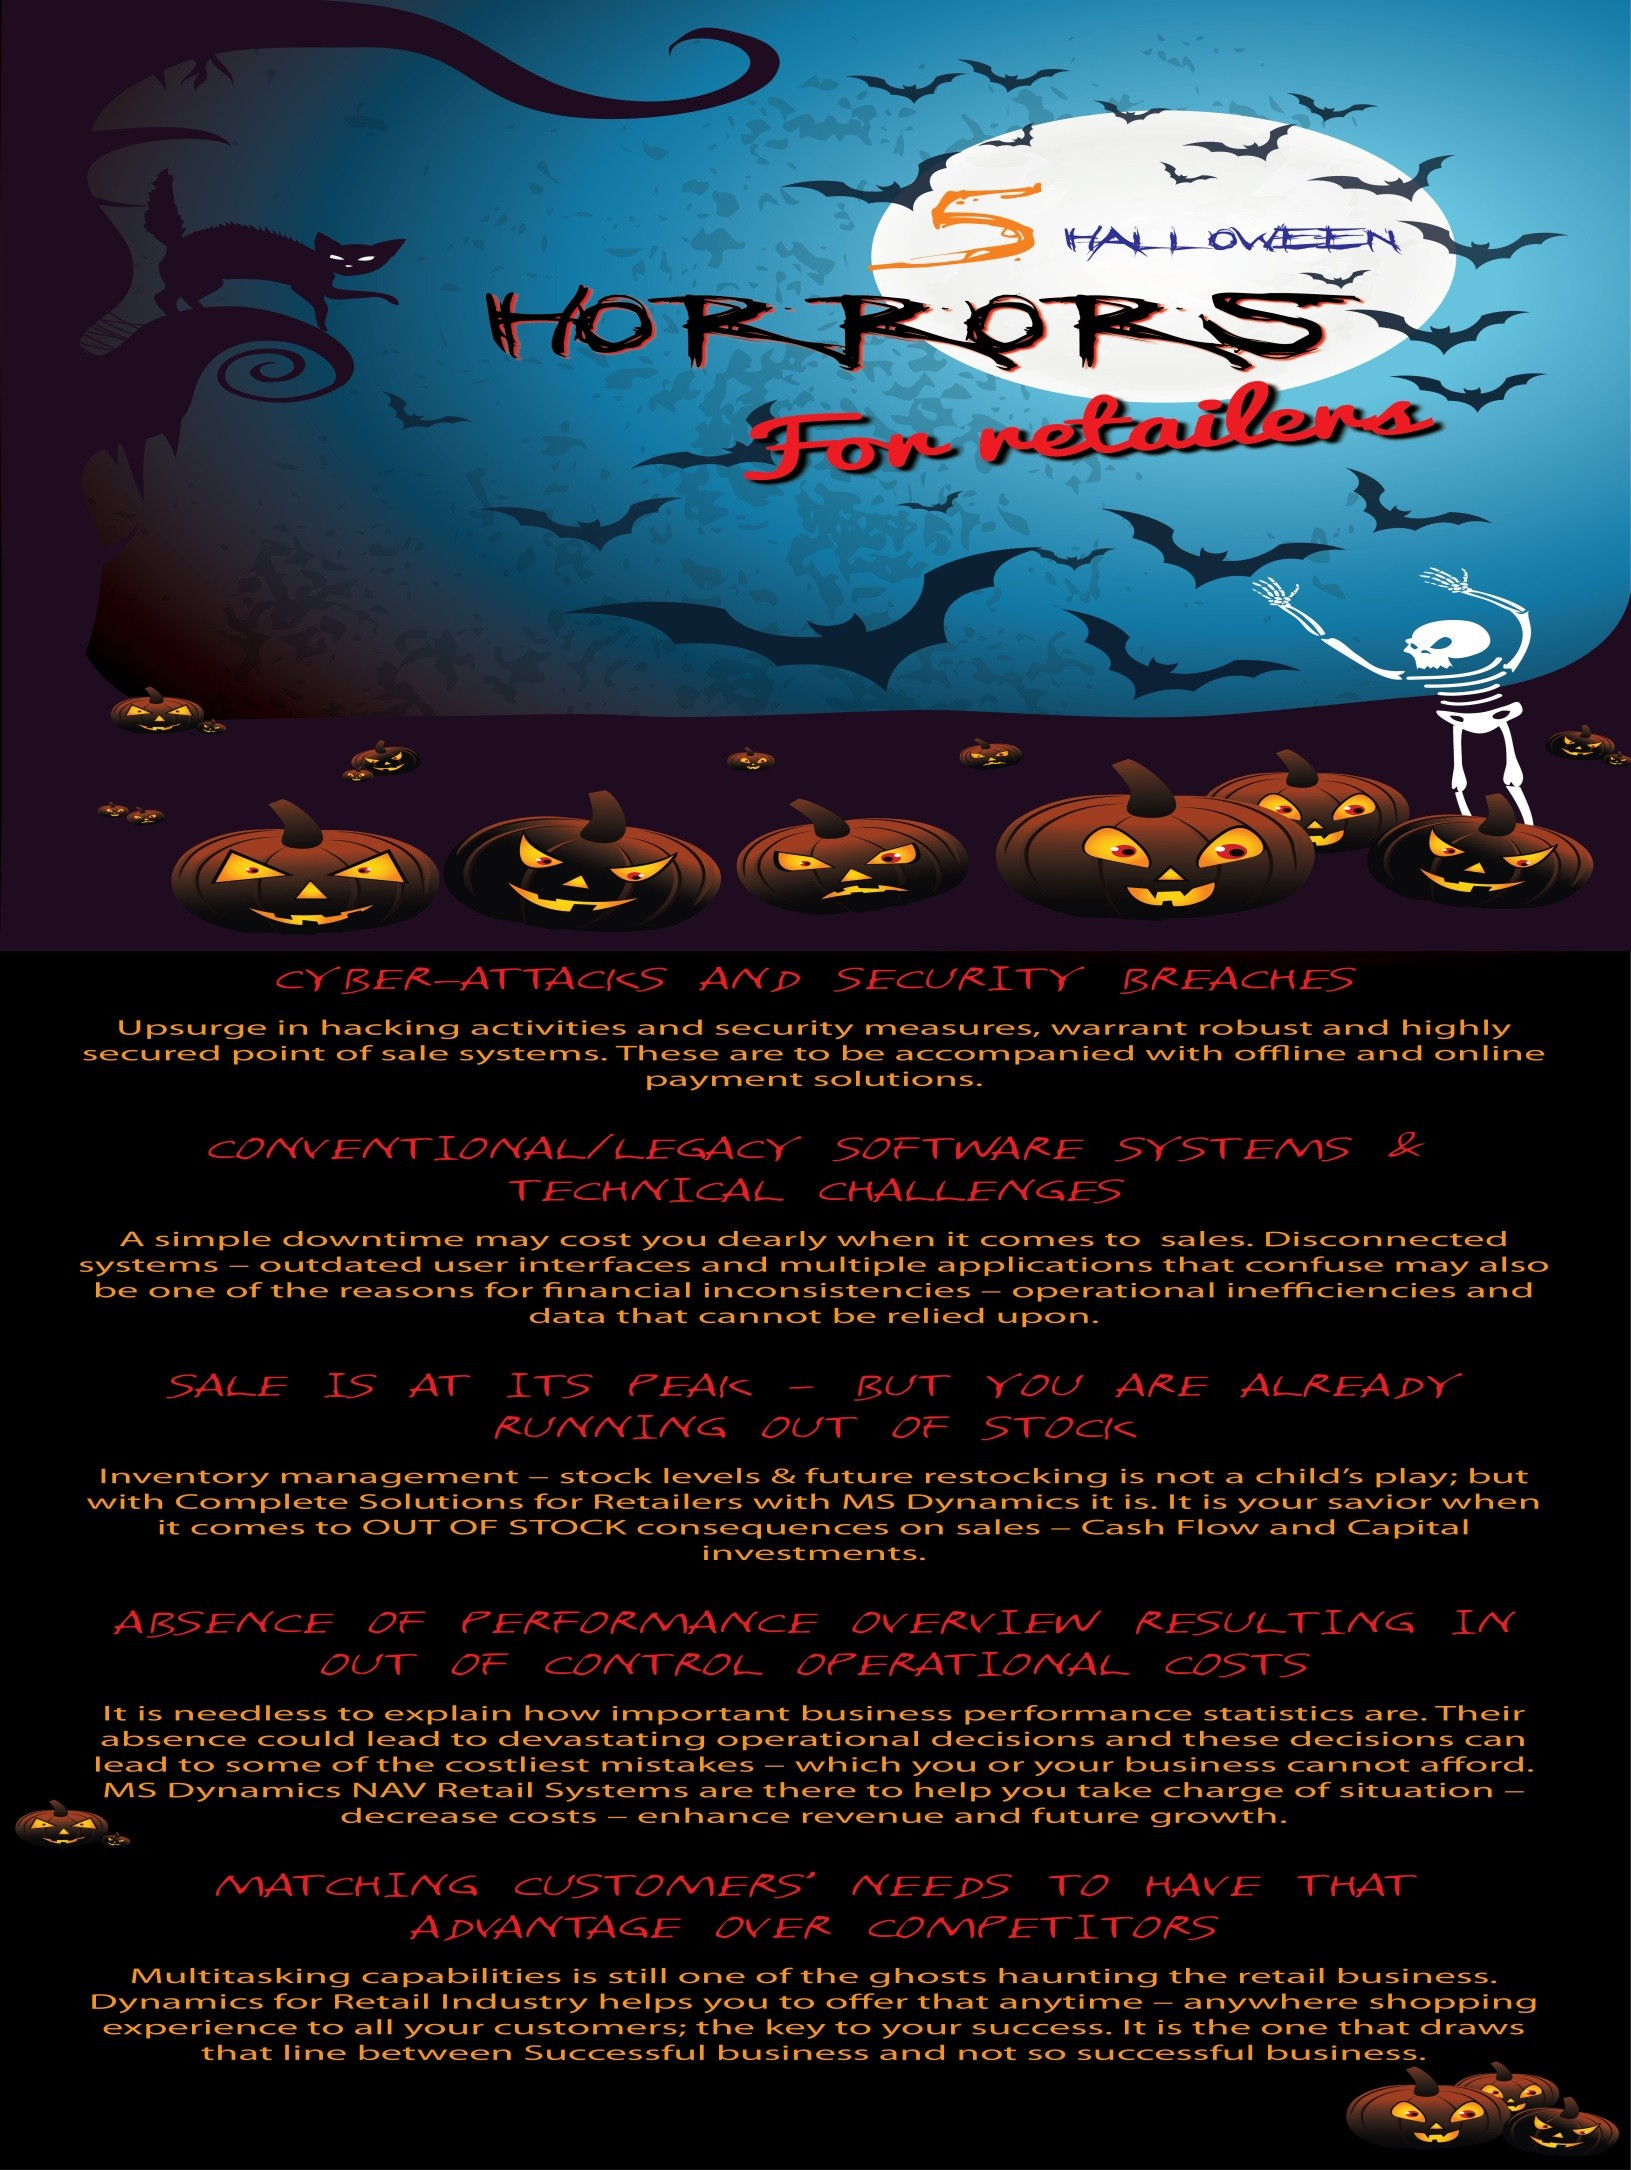 5 Halloween Horrors that haunt retailers; Candies of Complete Solutions with MS Dynamics - Image 1